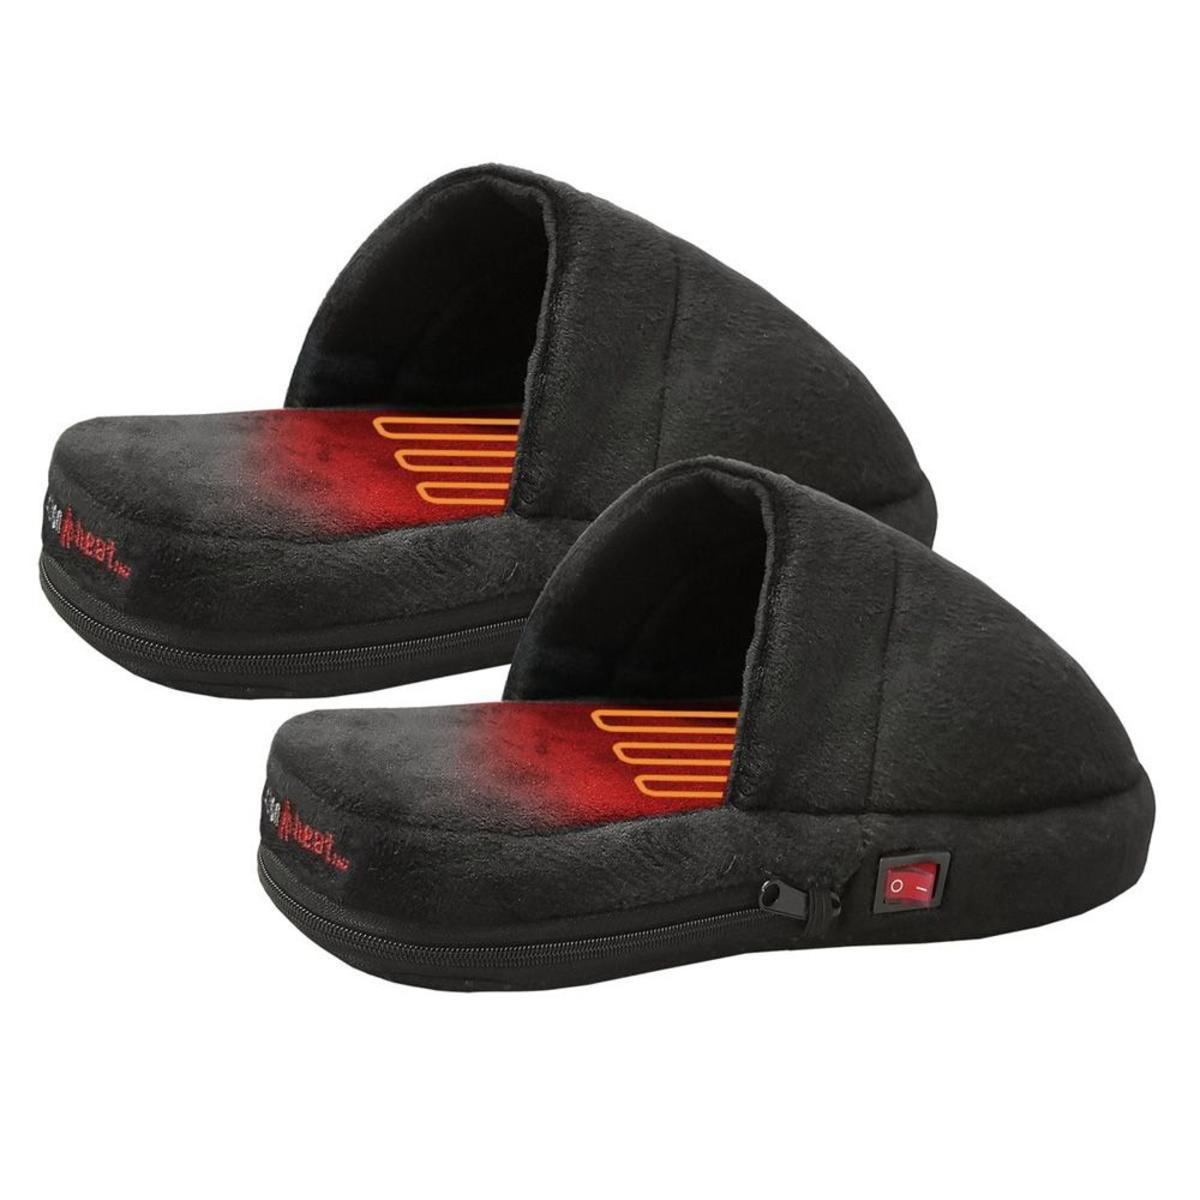 Open Box ActionHeat AA Battery Heated Slippers - Front